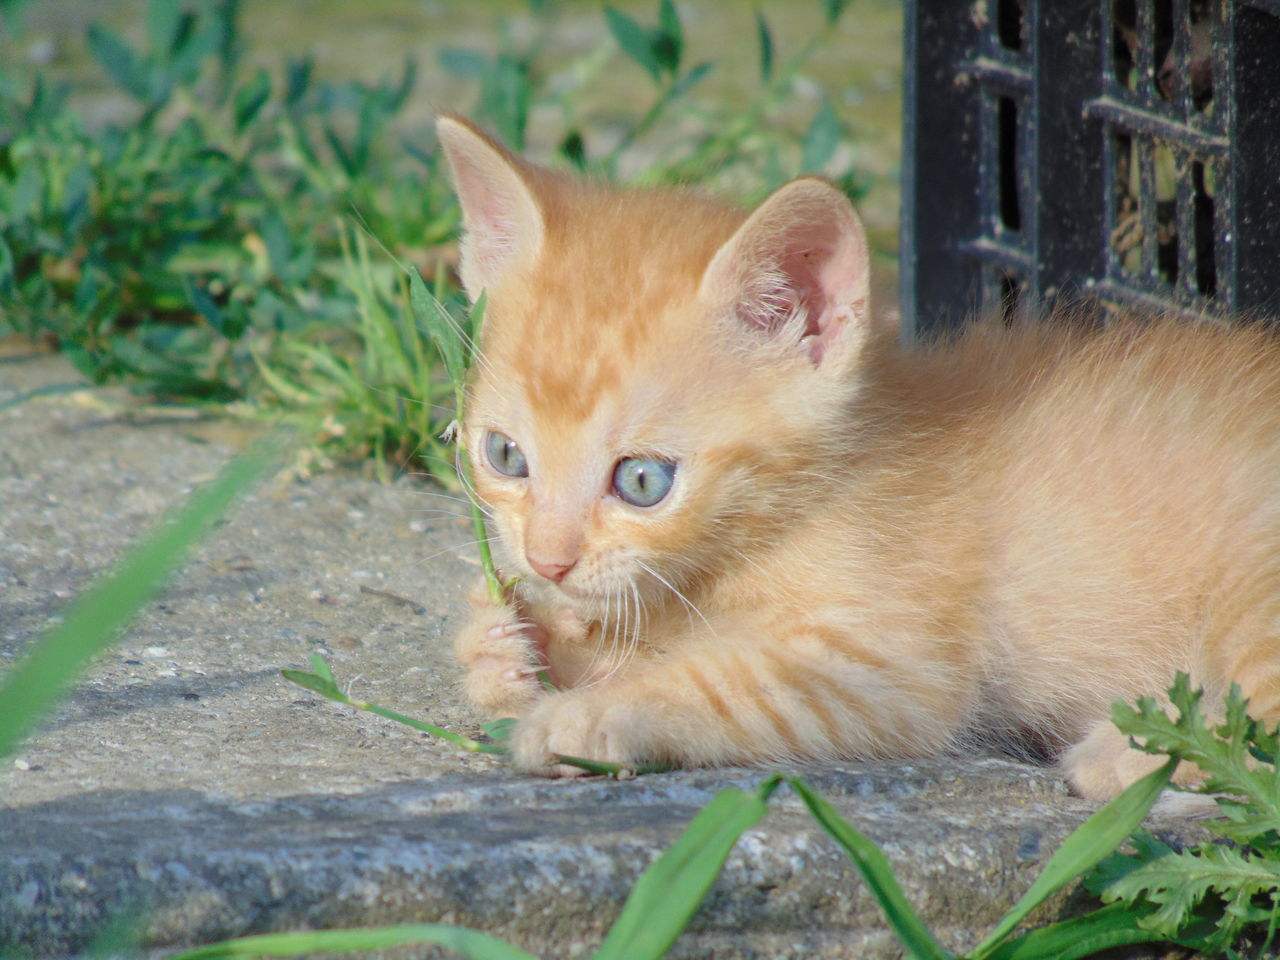 cat, mammal, feline, domestic cat, domestic animals, pets, domestic, one animal, vertebrate, portrait, looking at camera, whisker, no people, day, nature, close-up, plant, ginger cat